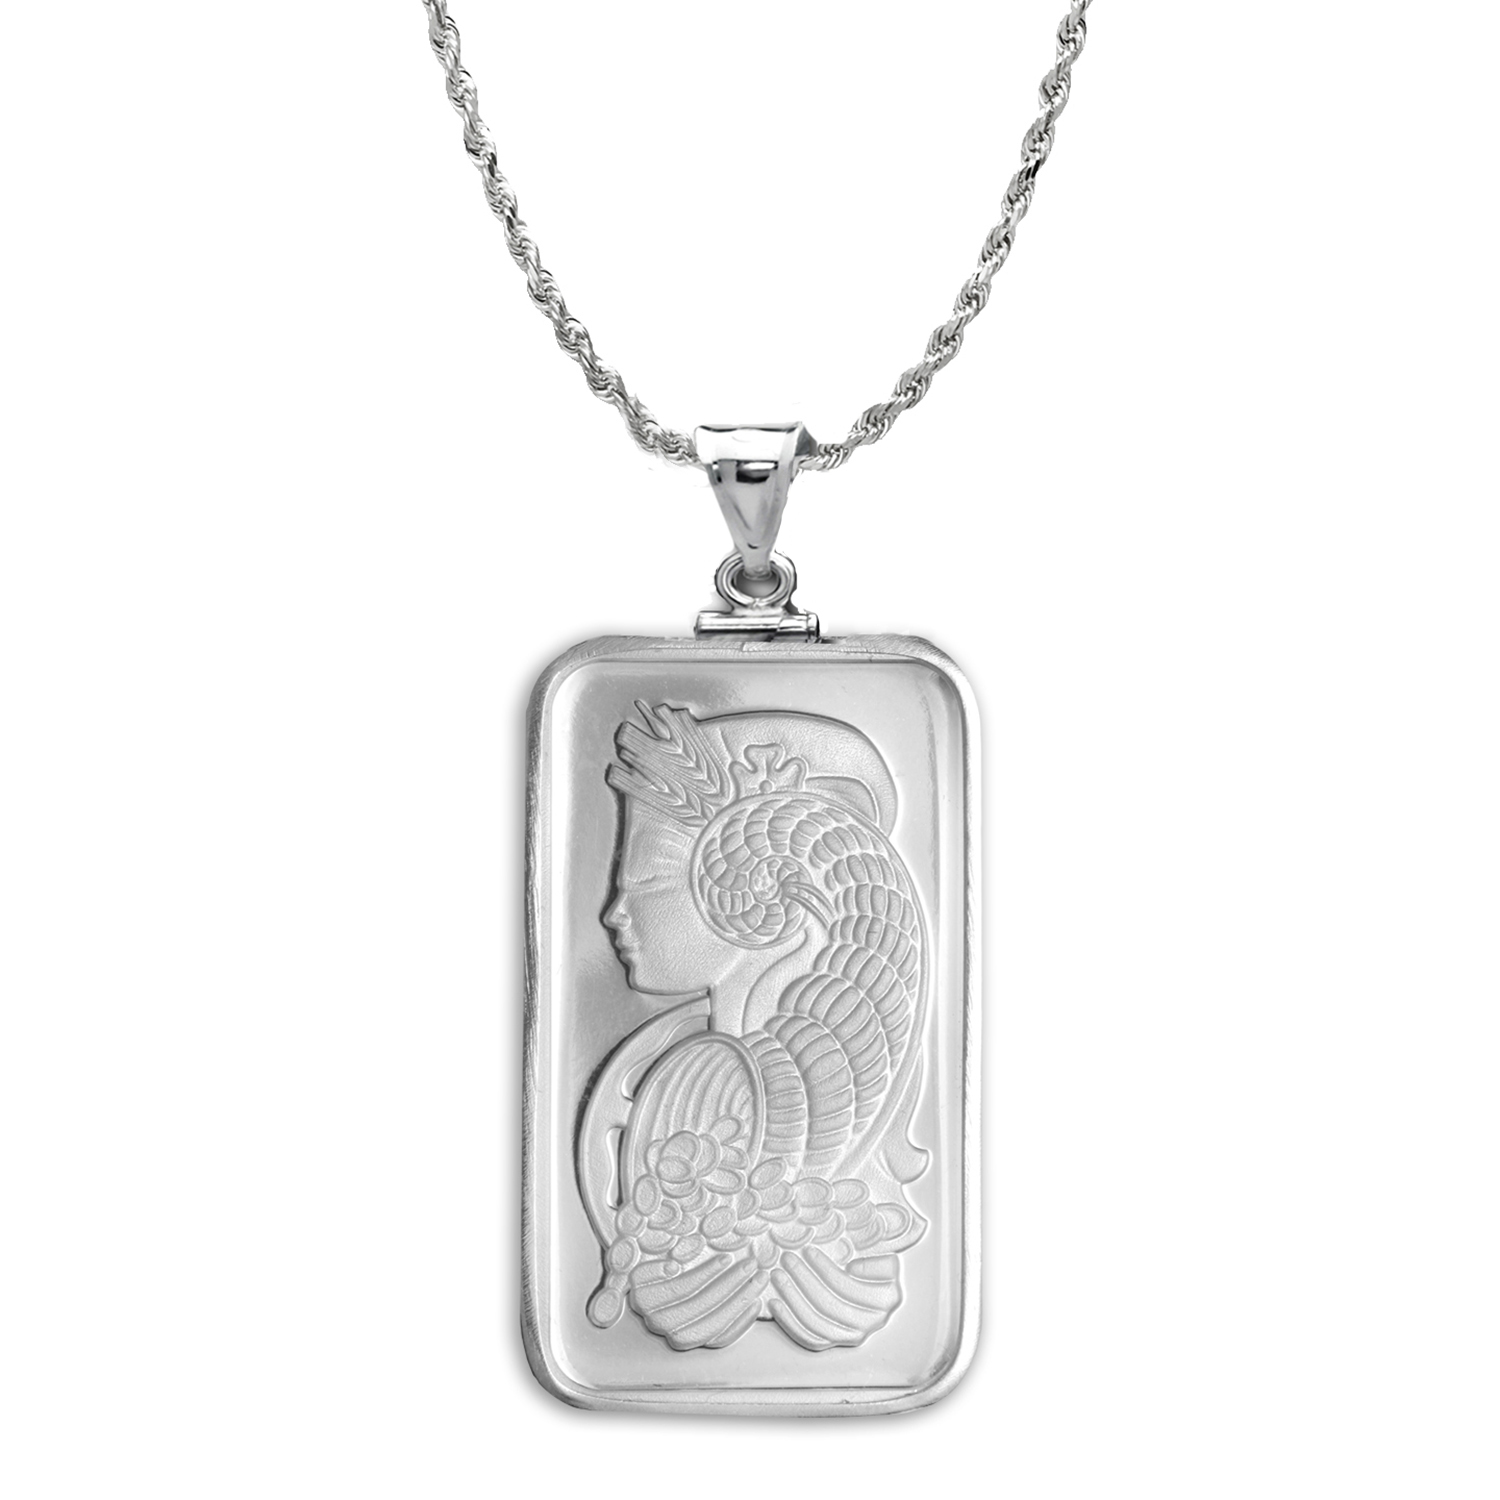 20 gram Silver - PAMP Suisse Fortuna Pendant (w/Chain)